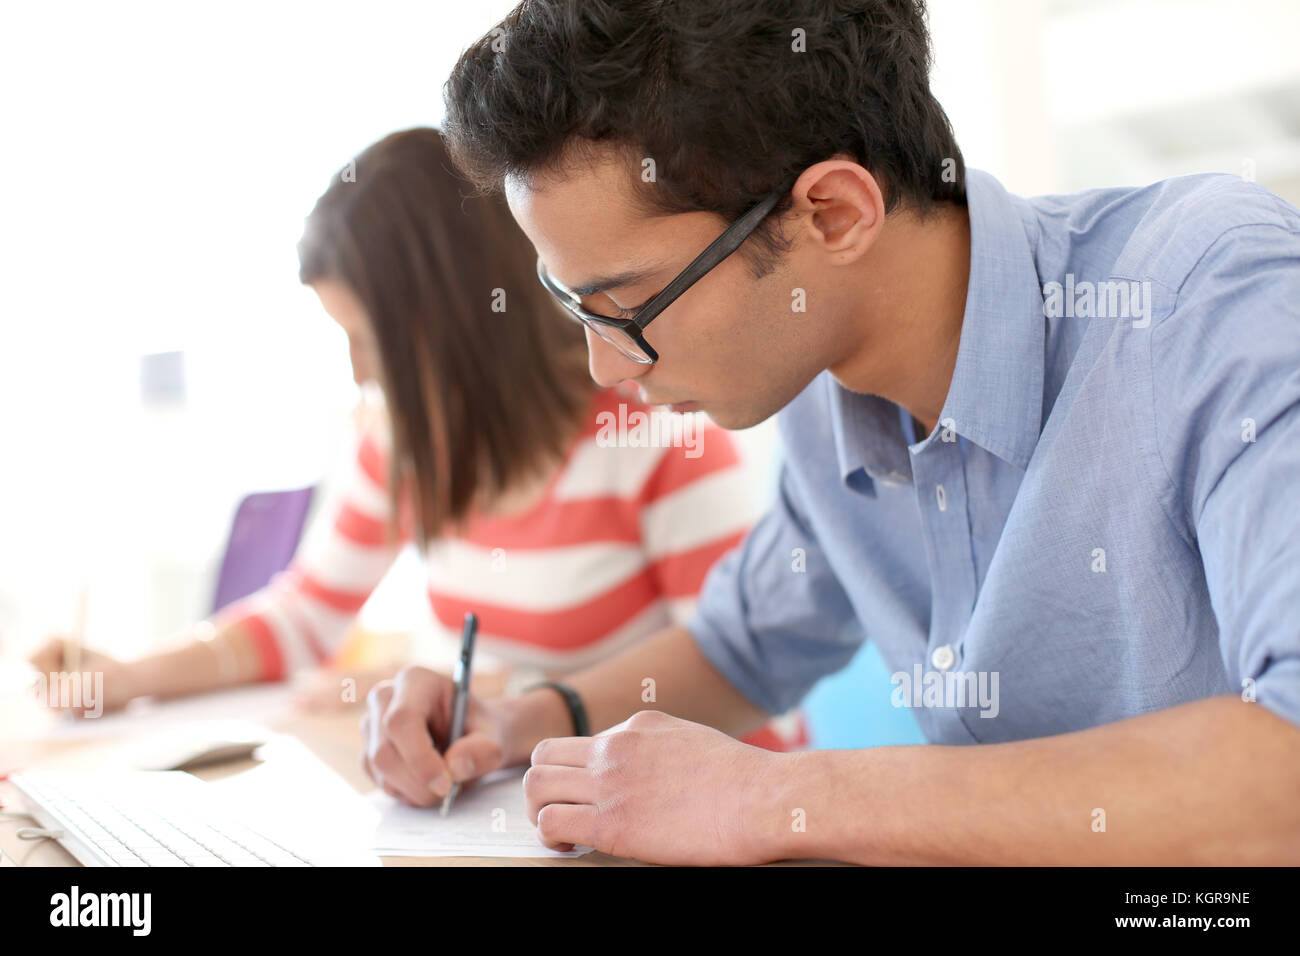 Student filling application form for business school Stock Photo